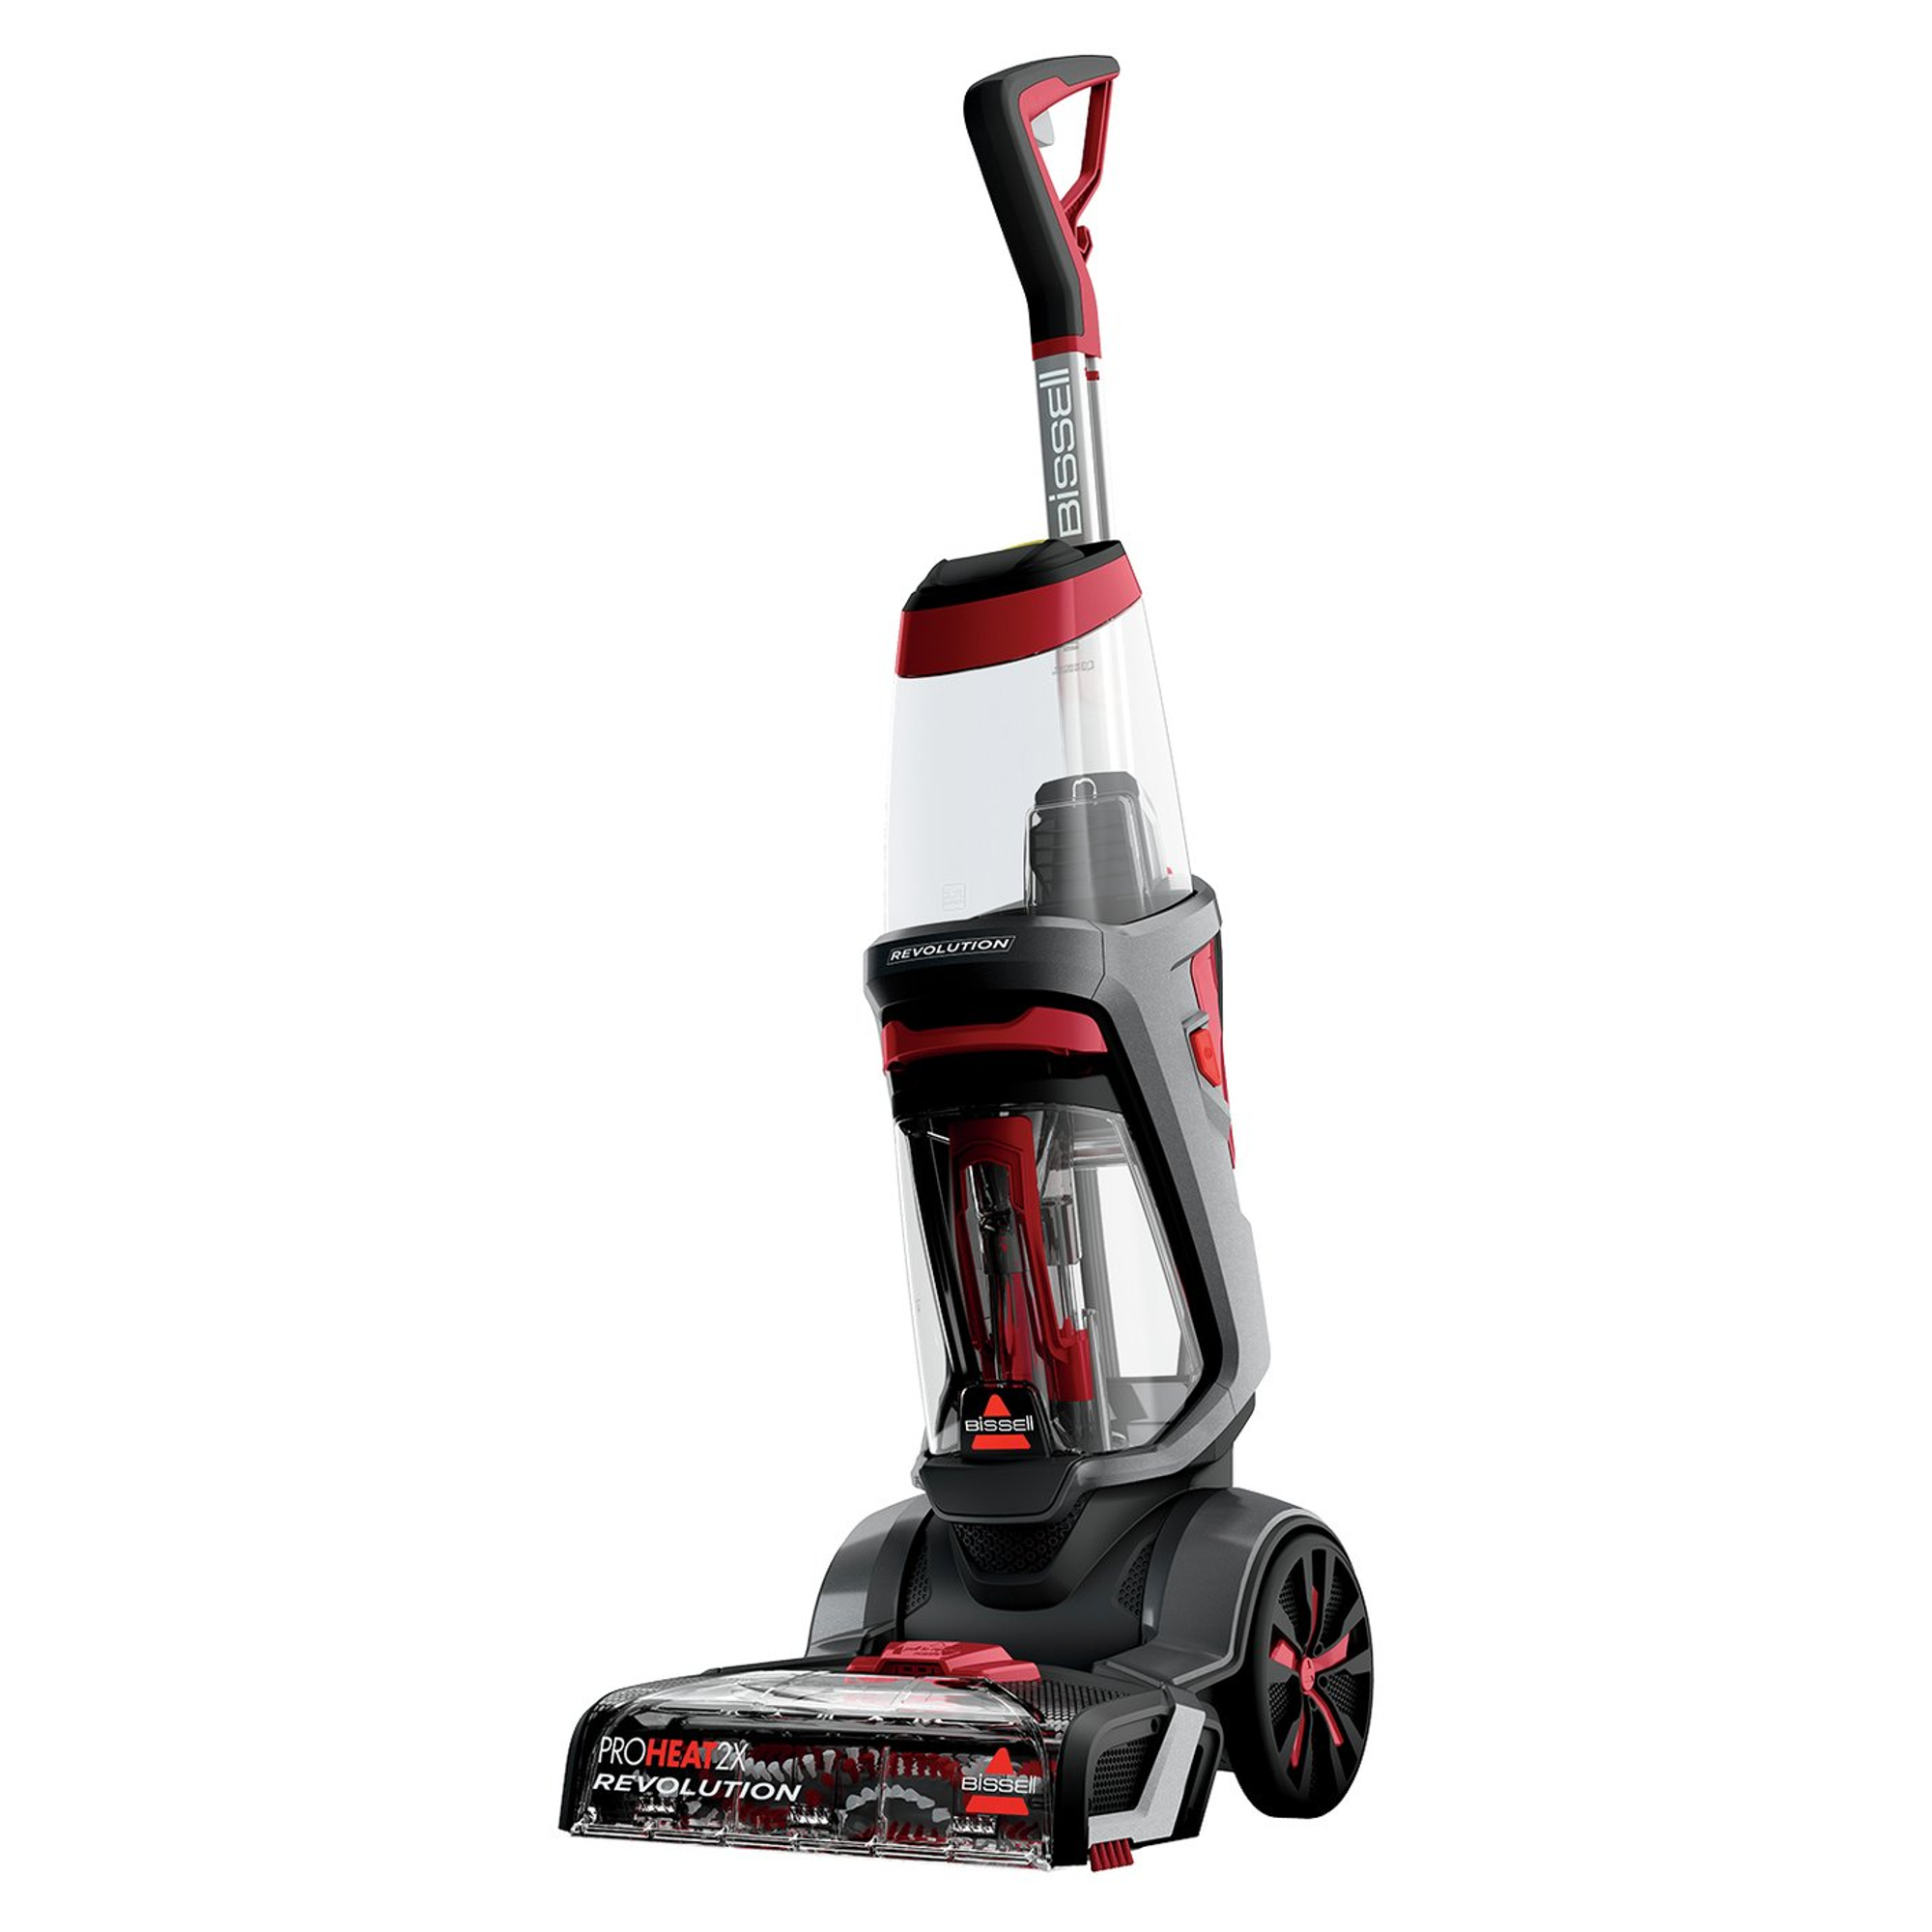 Bissell 18583 Proheat 2x Revolution 800w Carpet Cleaner